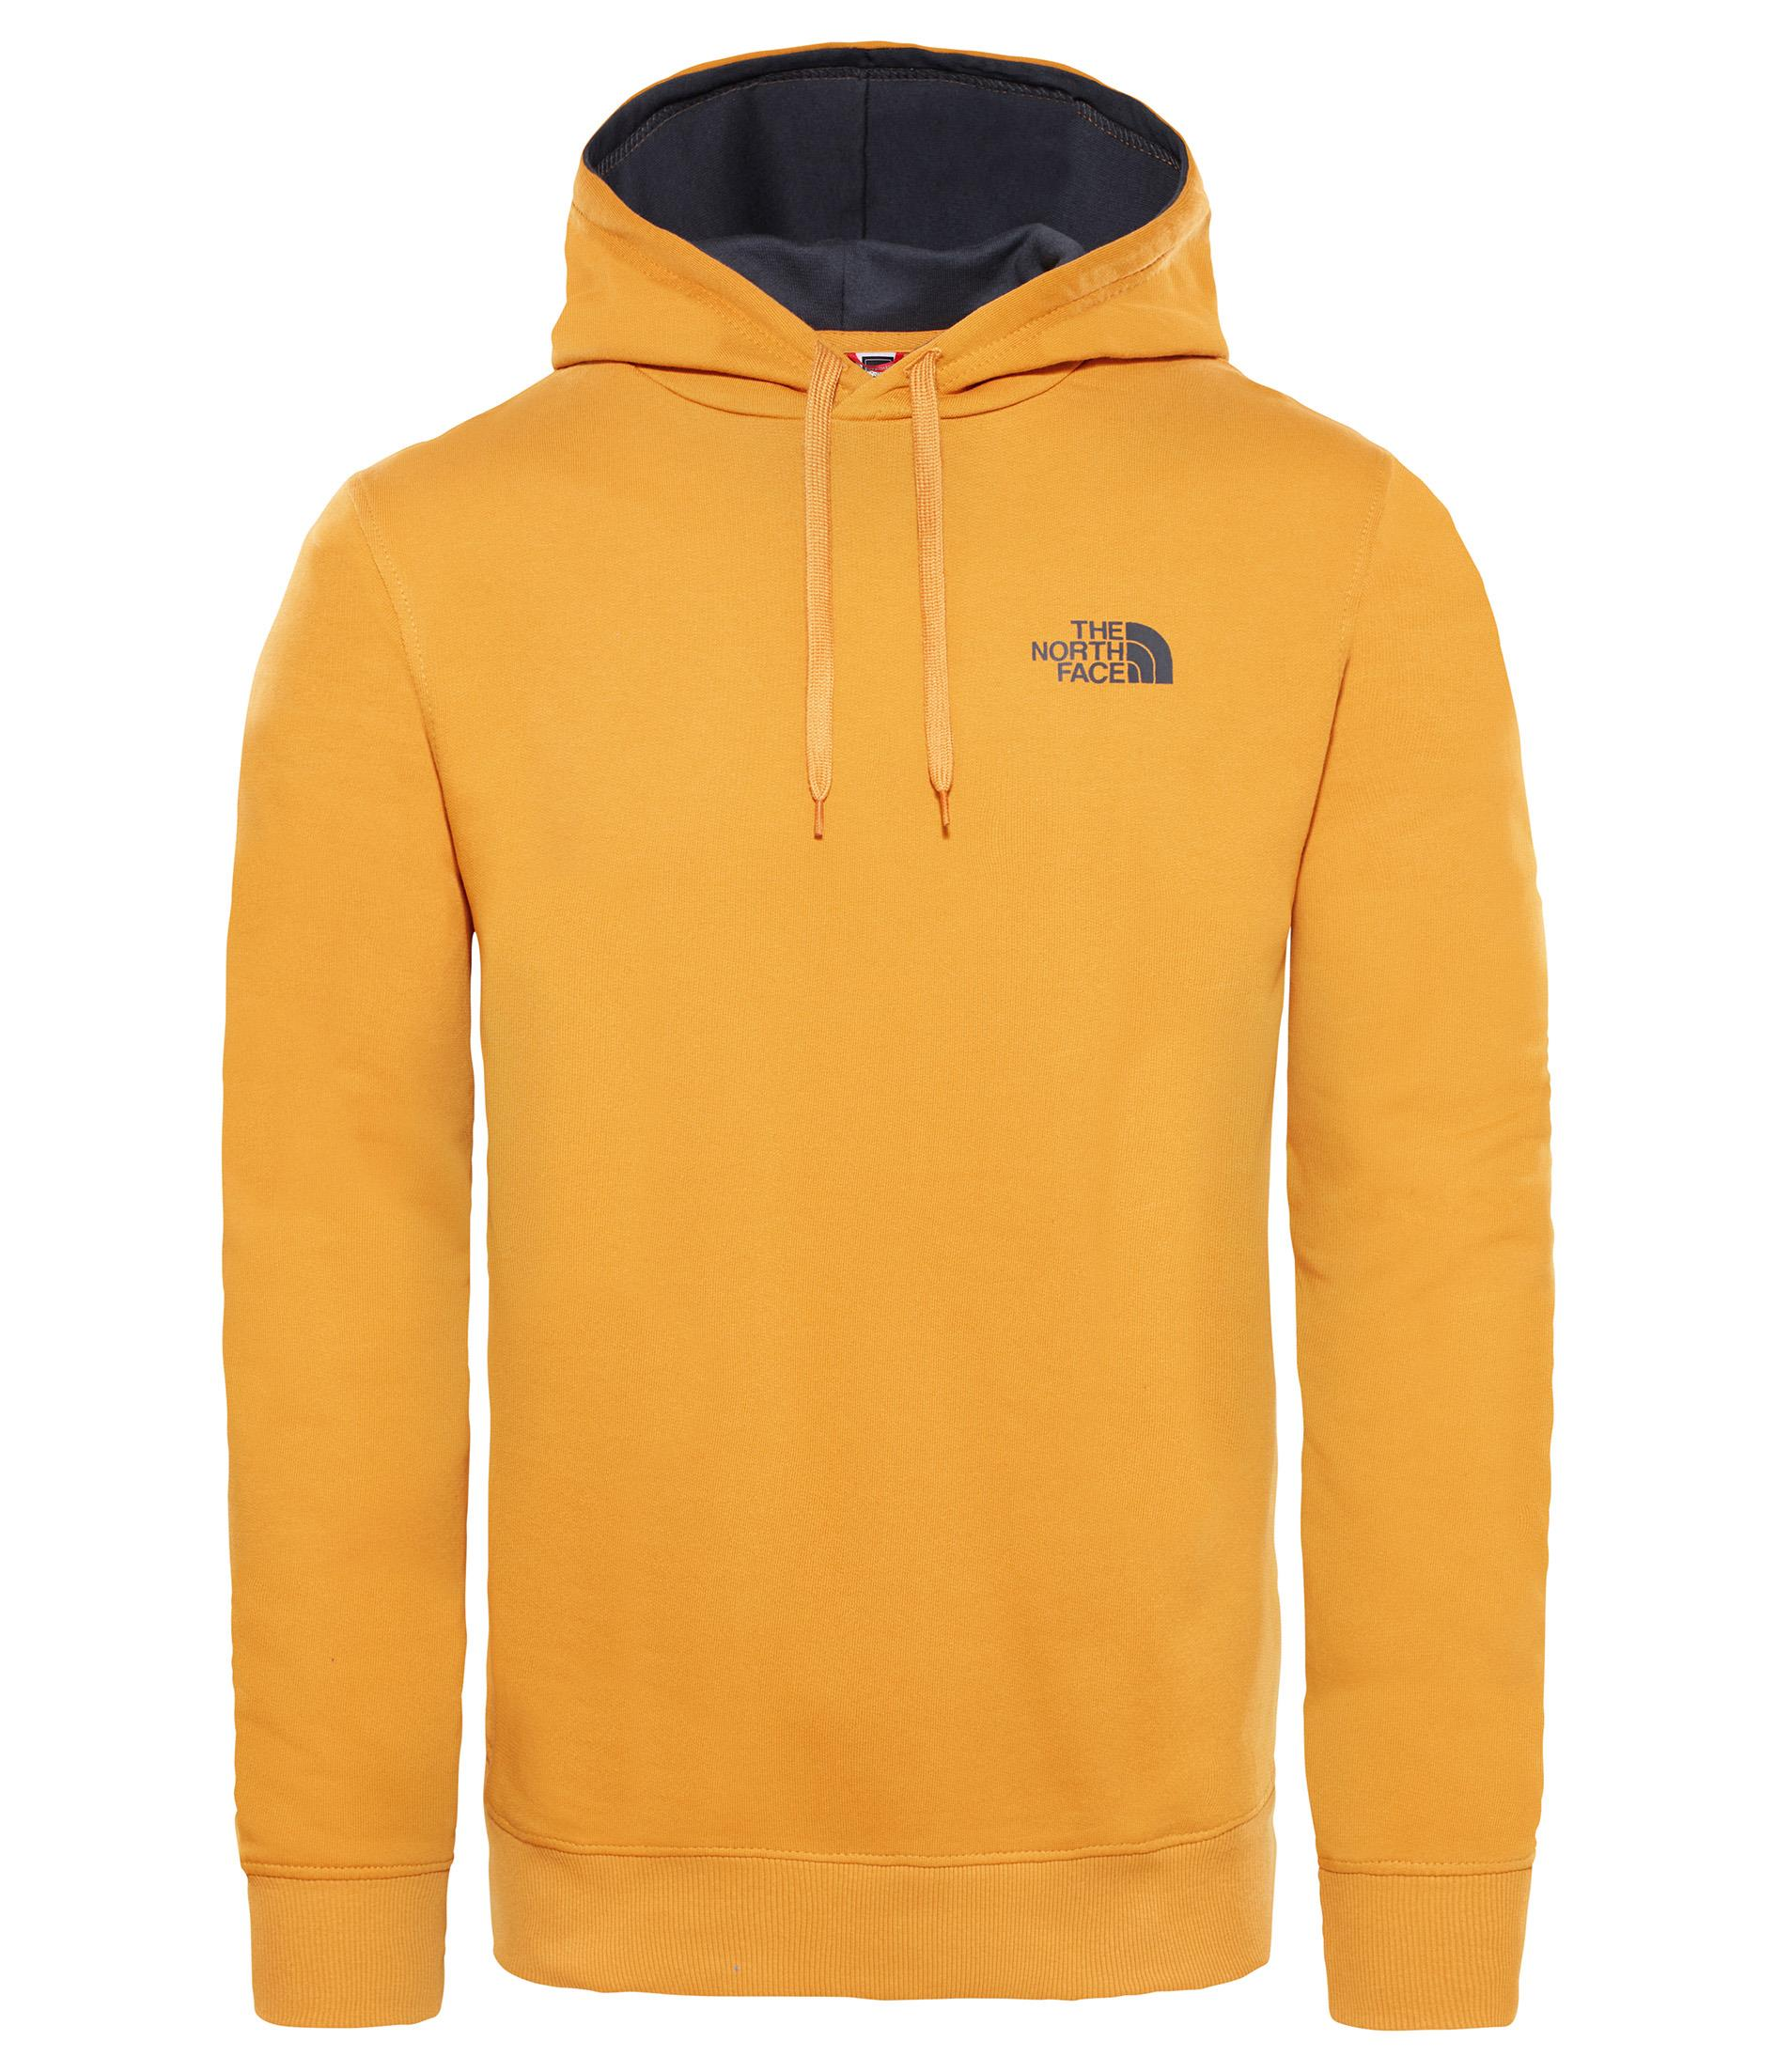 The Northface Erkek Seasonal Drew Peak Pullover Light -Eu T92S57Hbx Sweatshirt